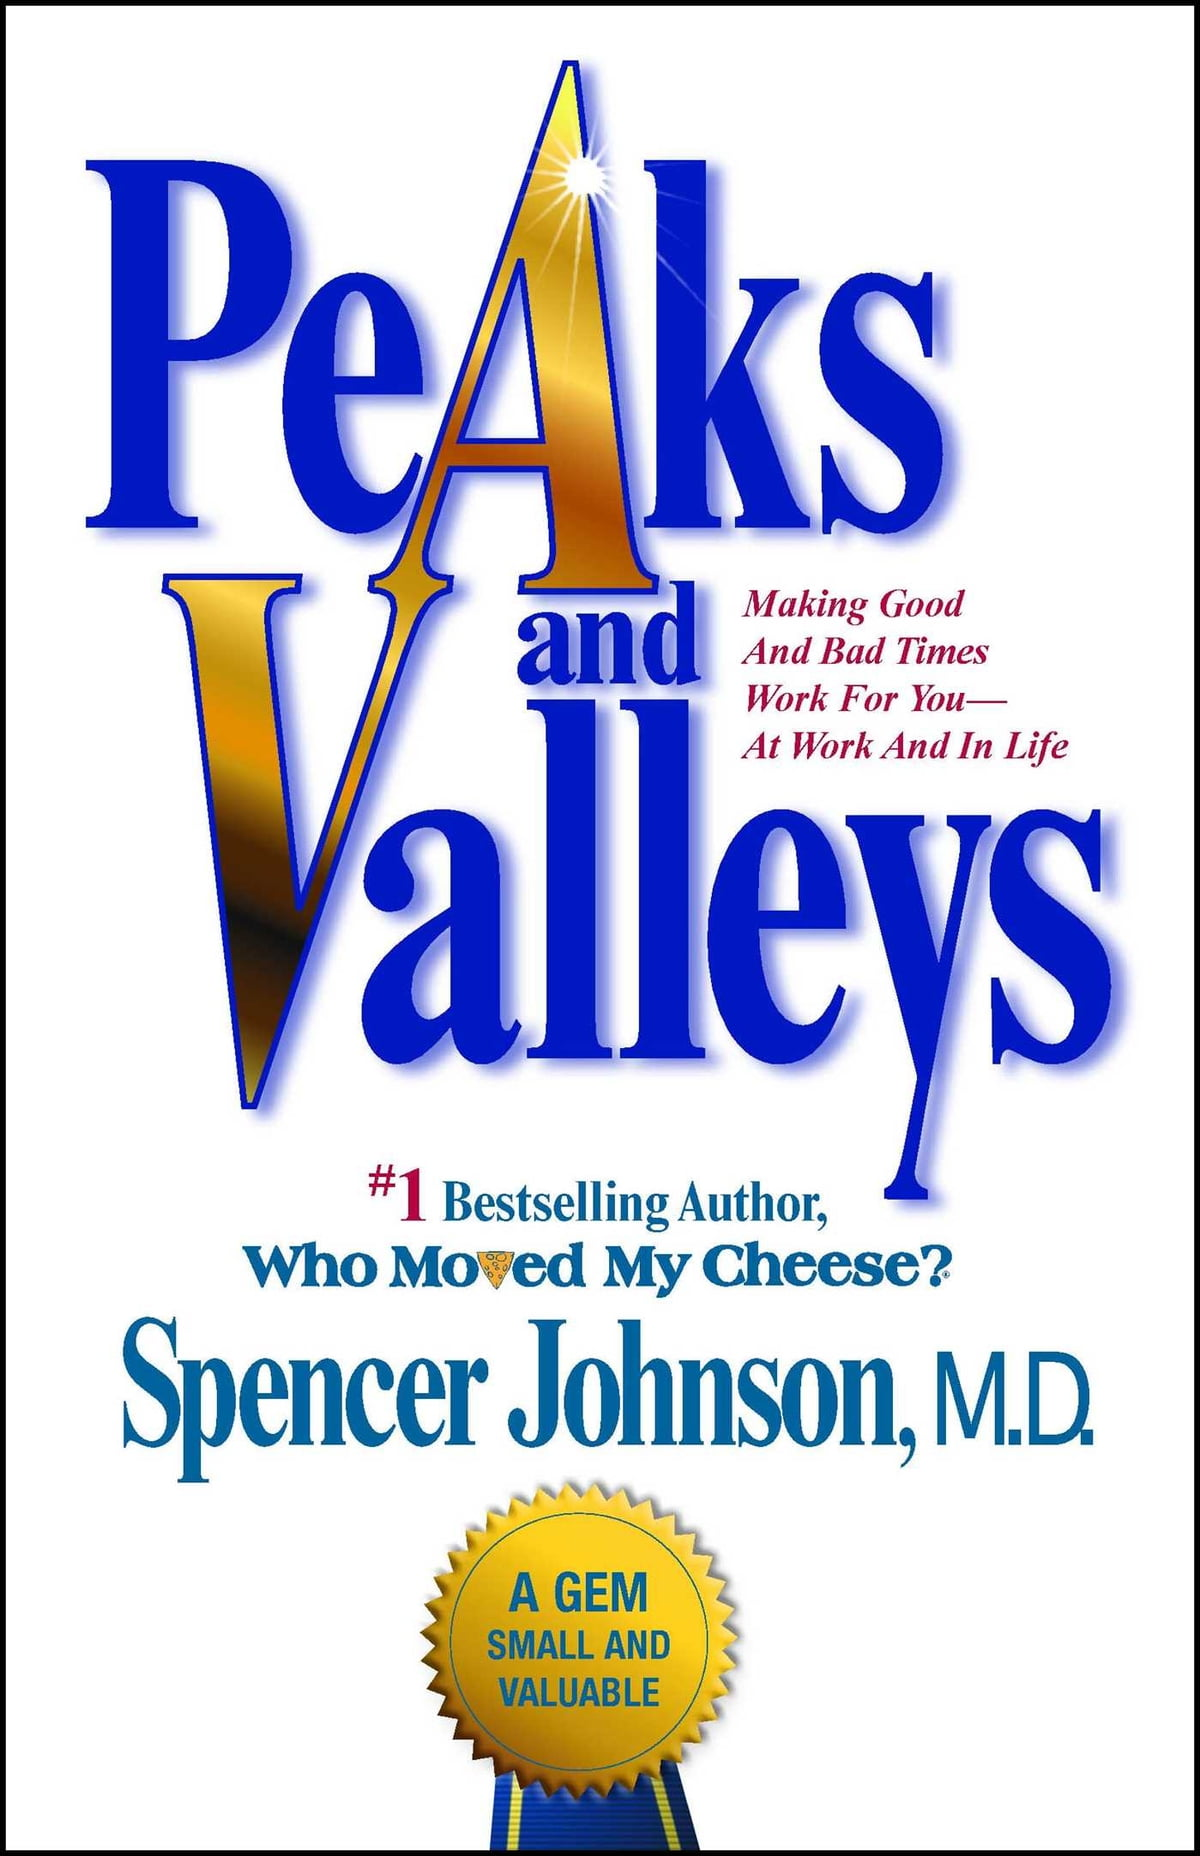 Peaks and Valleys eBook by Spencer Johnson, M D